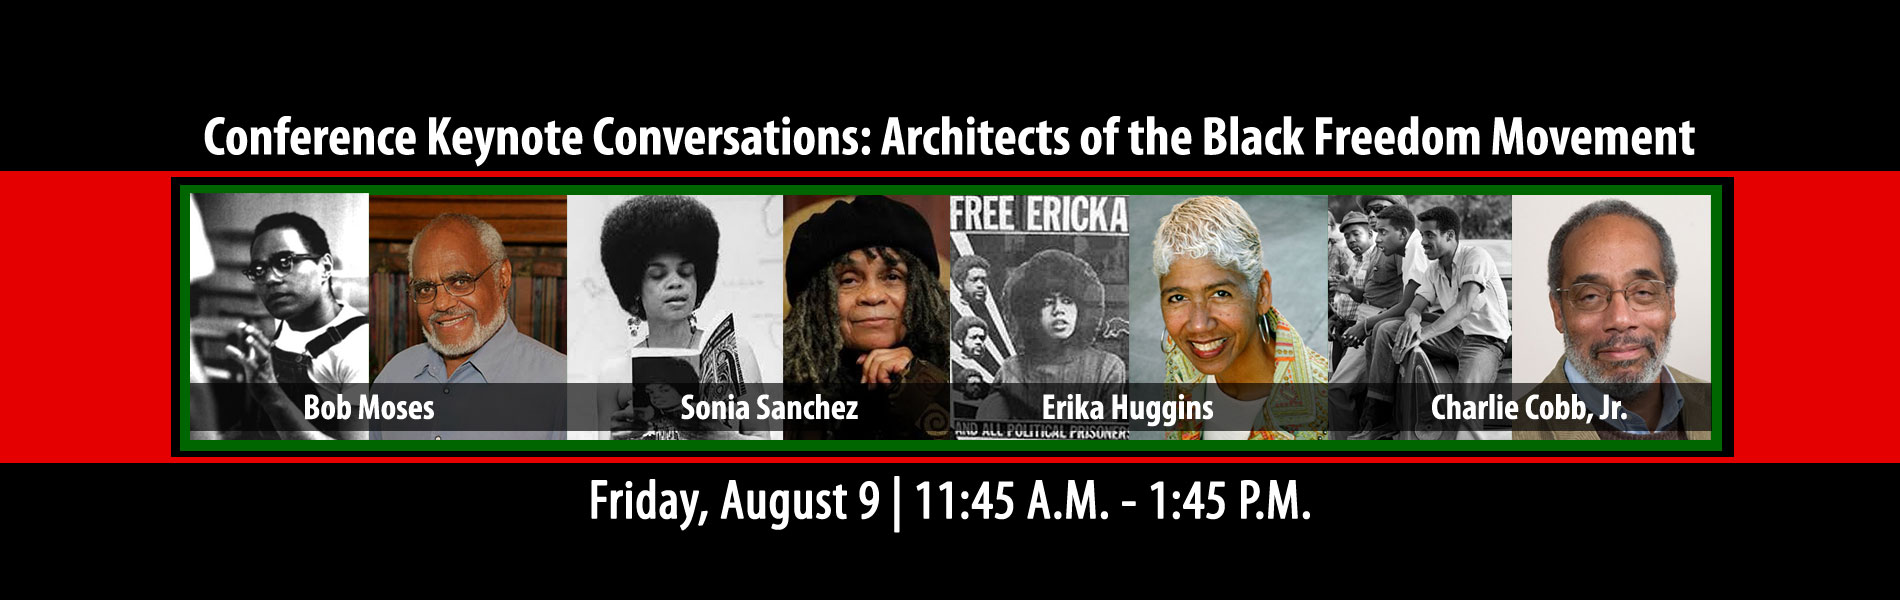 Architects of the Black Freedom Movement